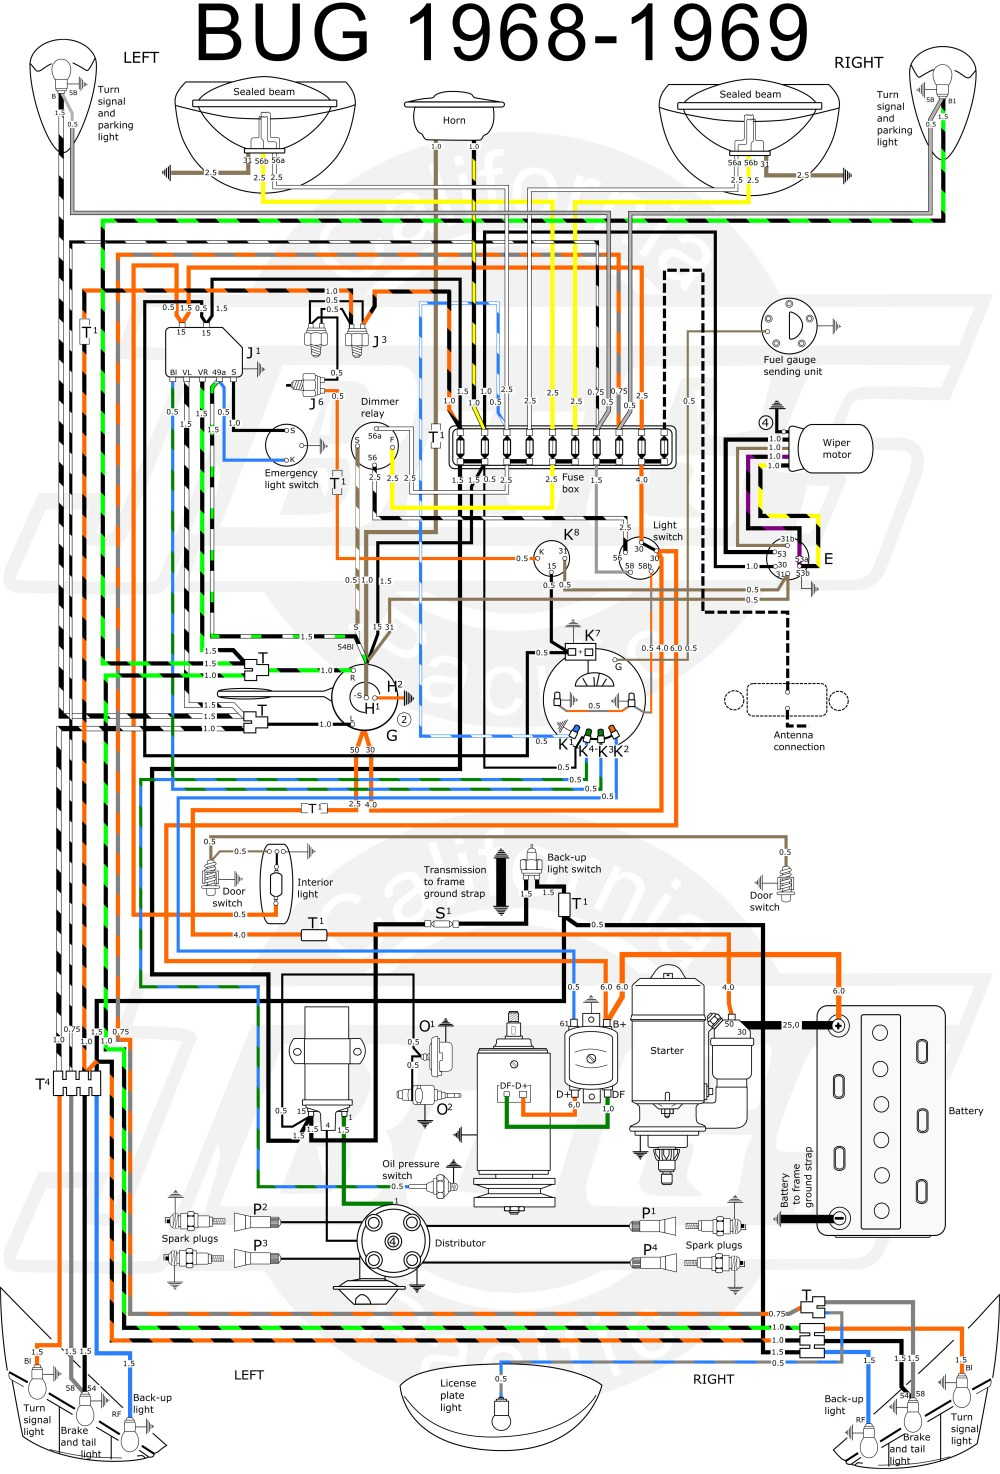 medium resolution of 1964 vw bus engine diagram wiring diagram third level rh 15 13 14 jacobwinterstein com vw 1600 engine diagram type 1 vw engine diagram